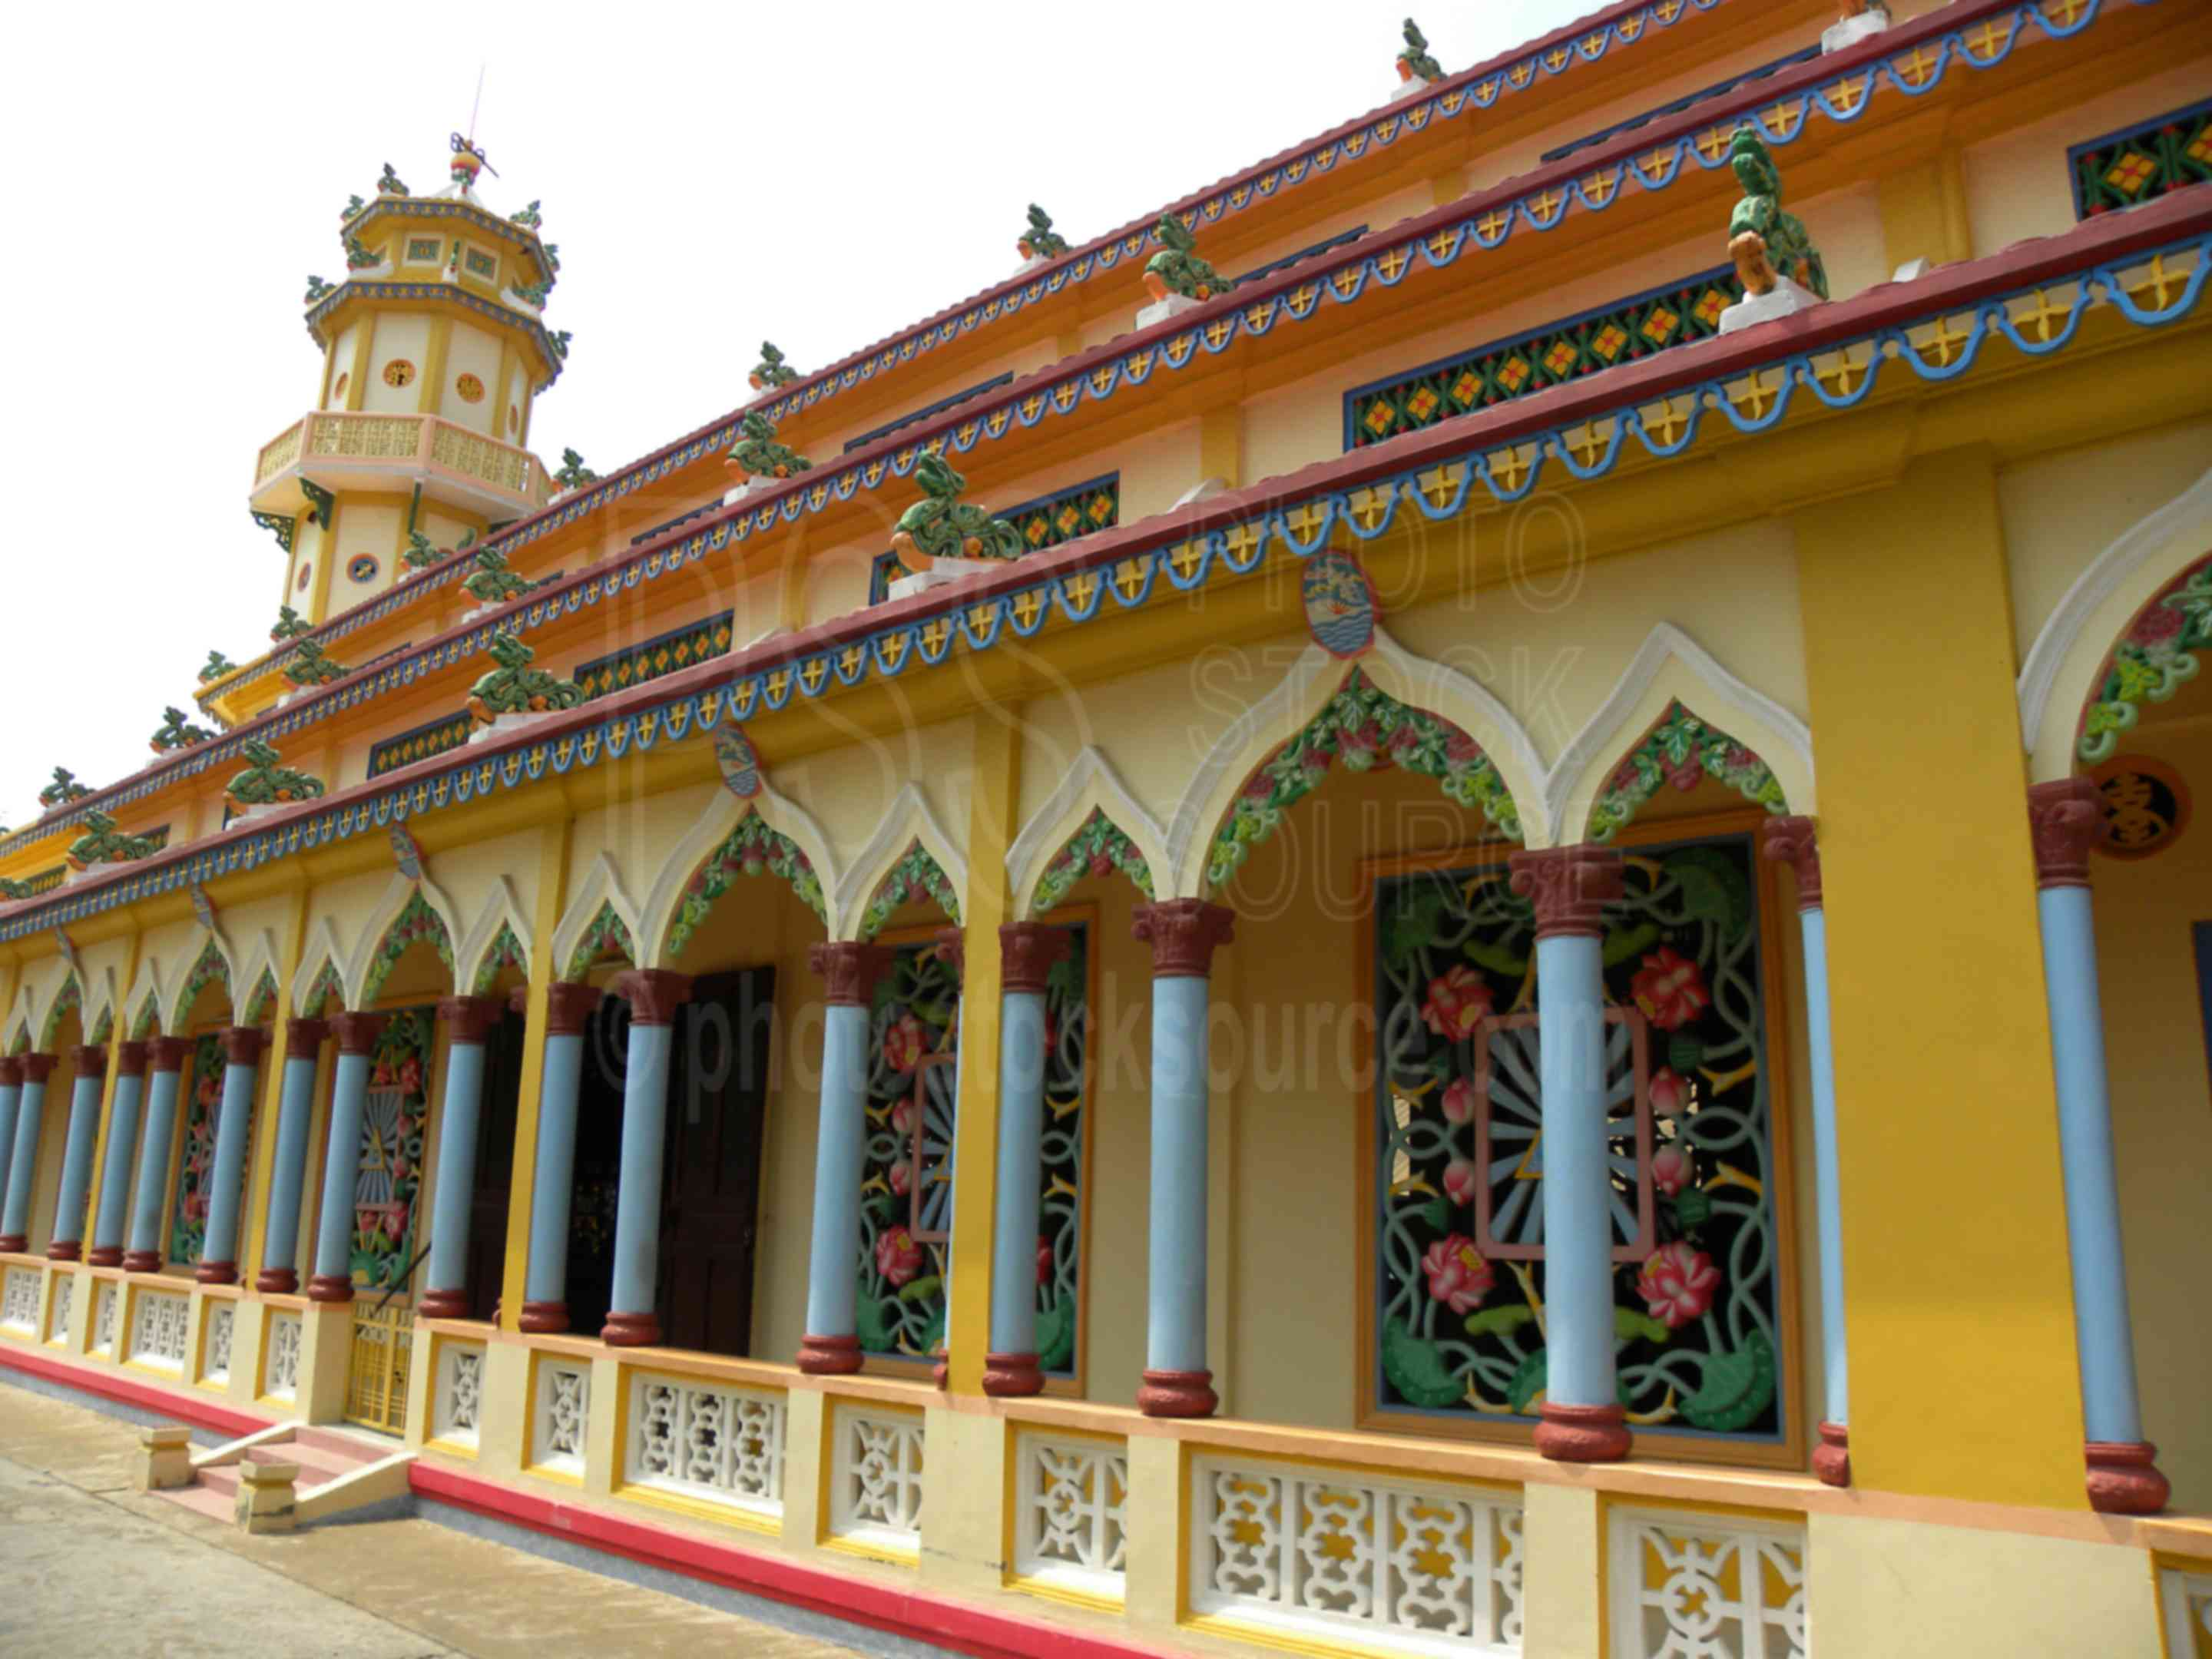 Cao Dai Temple,temple,entrance,worship,religious,painted,colorful,religion,church